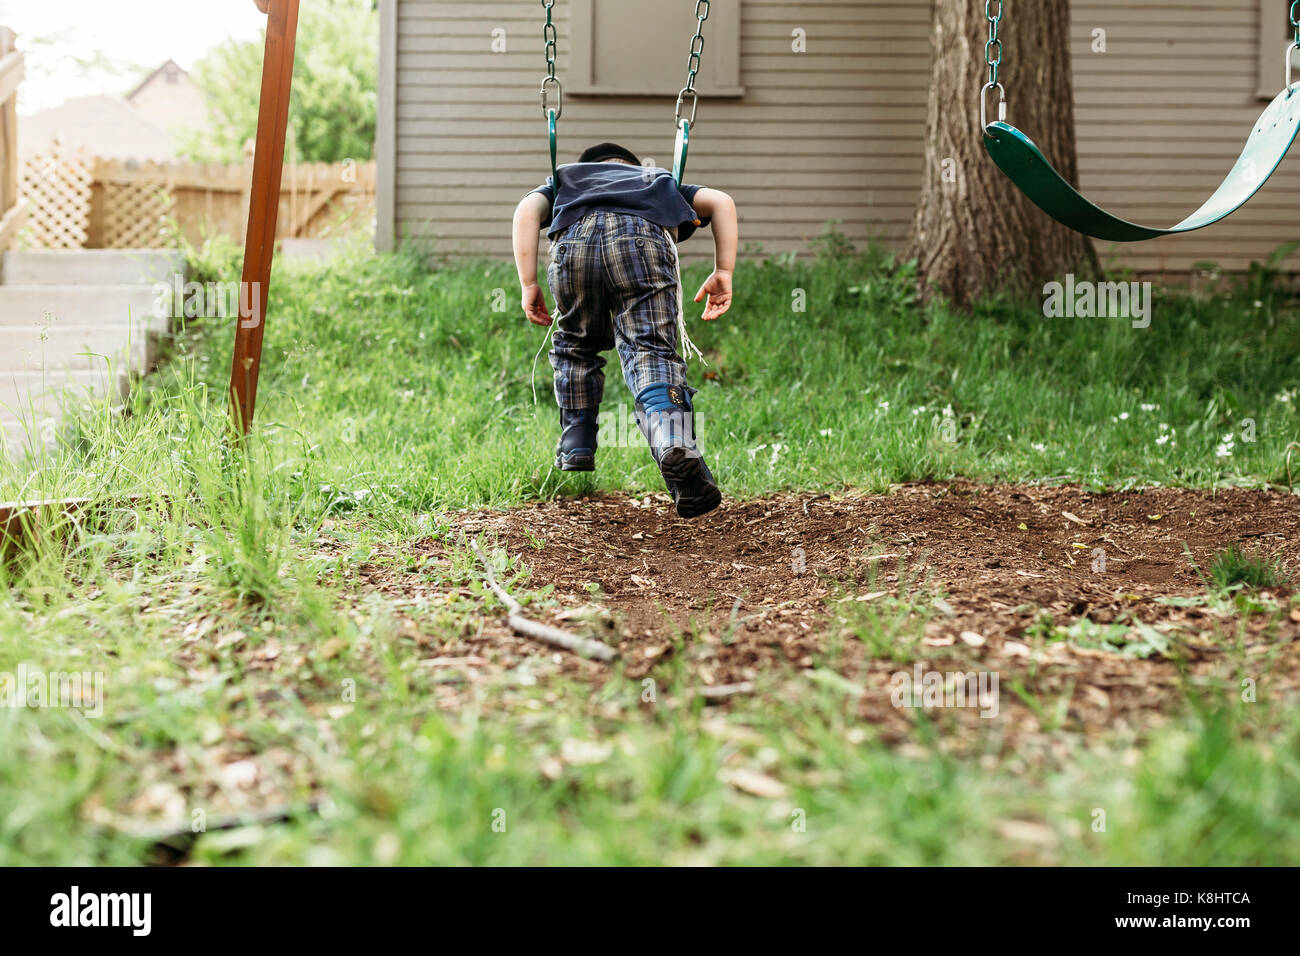 Rear view of playful boy swinging at playground - Stock Image